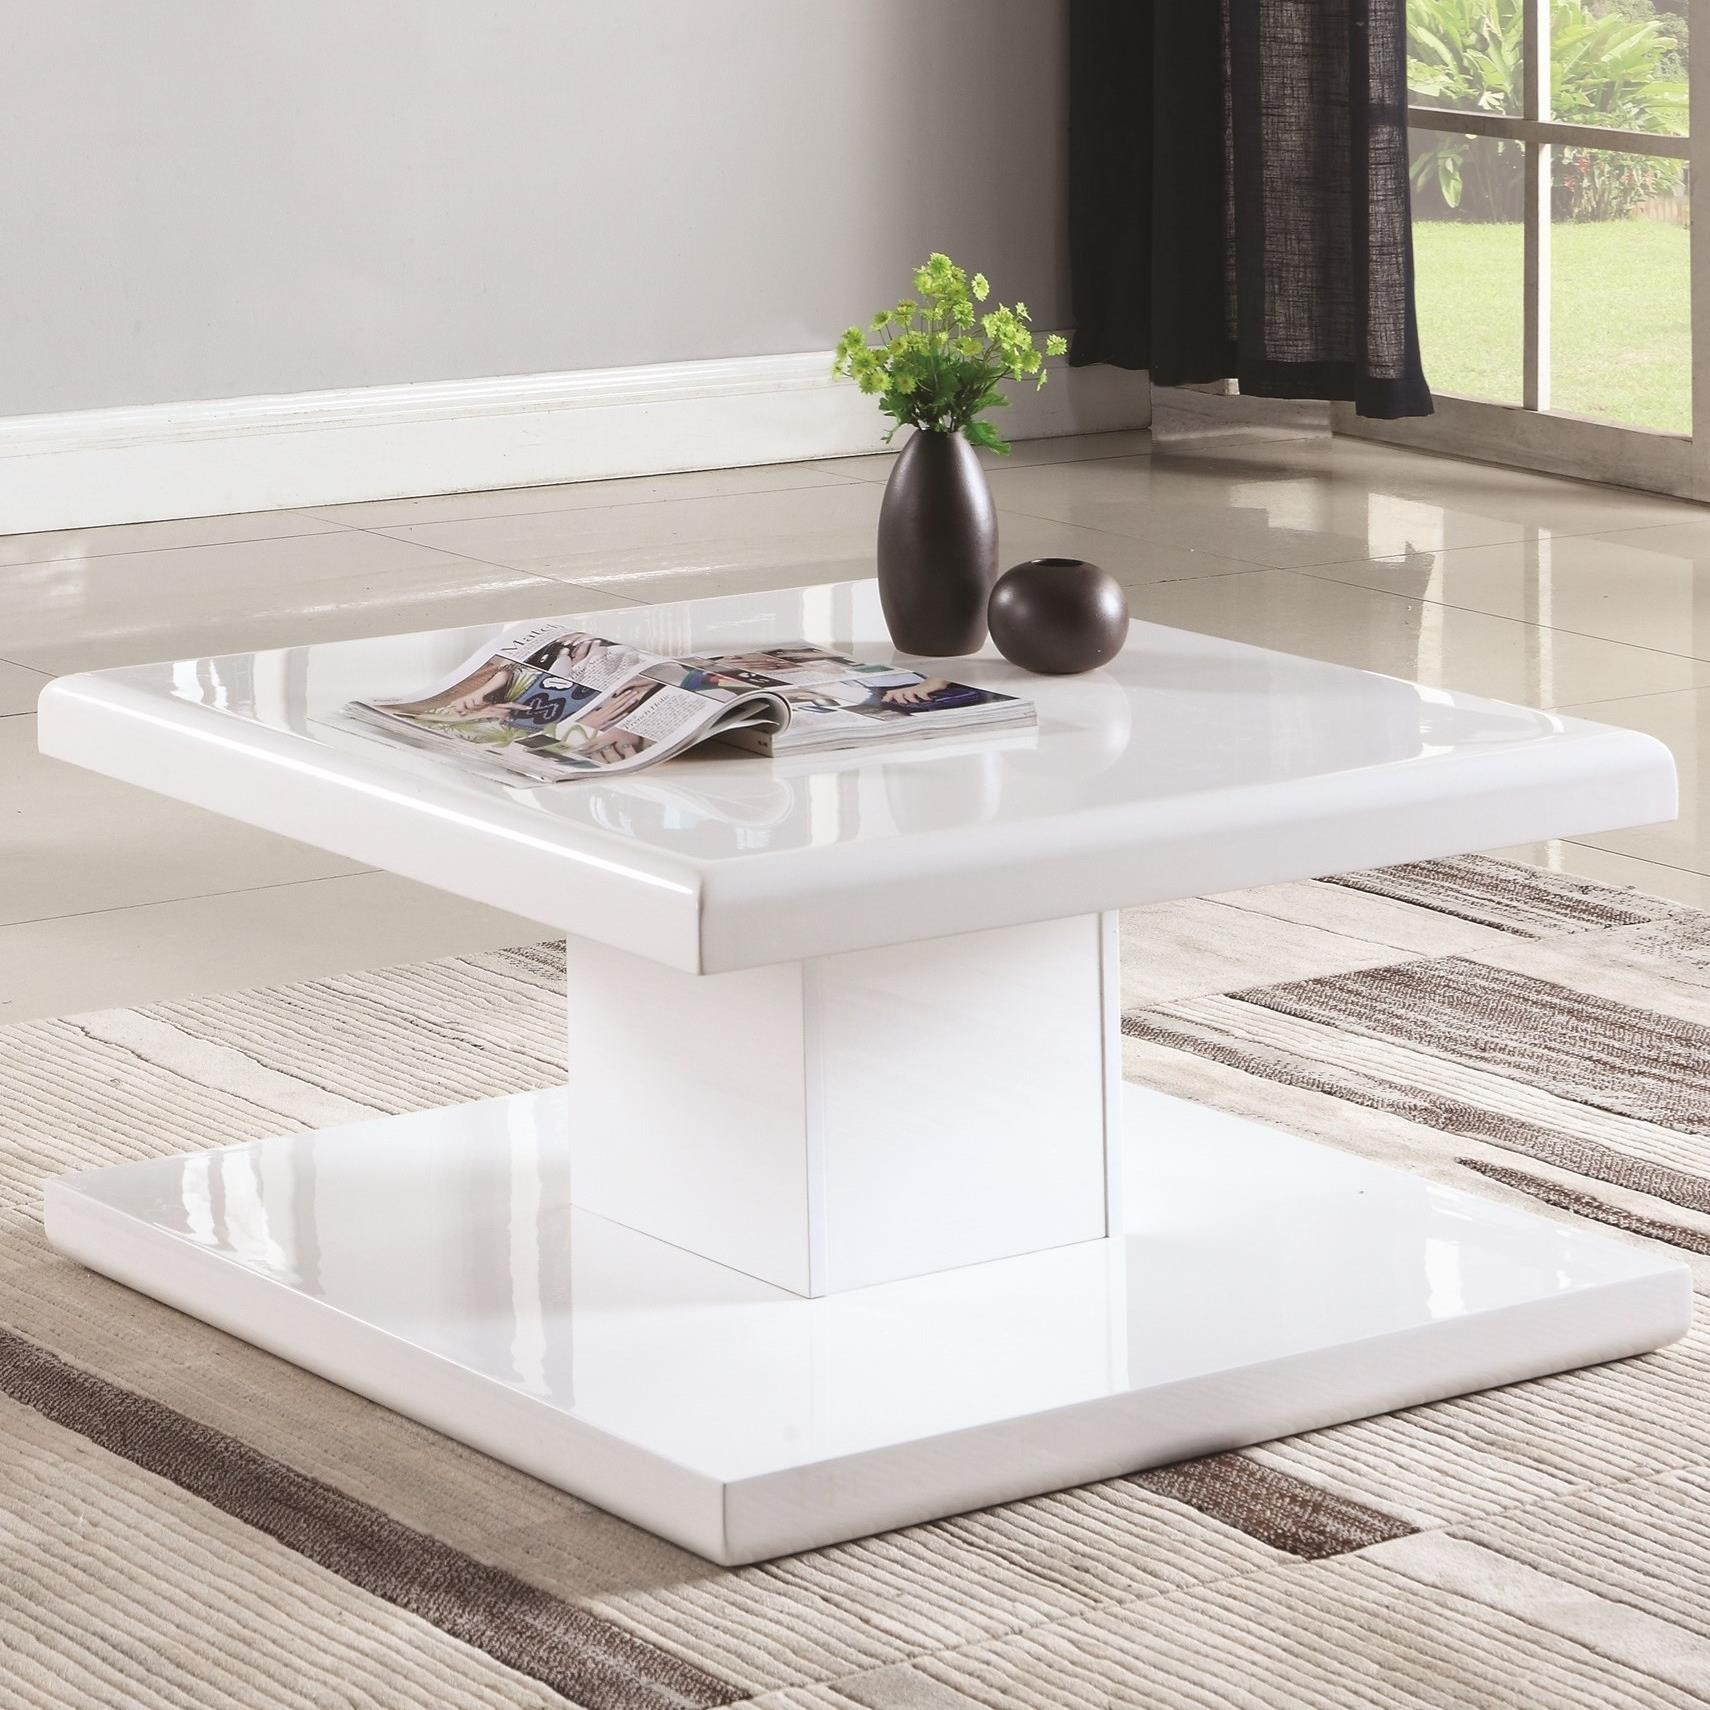 Coaster 72109 Contemporary Square Coffee Table With Swiveling Top   Coaster  Fine Furniture